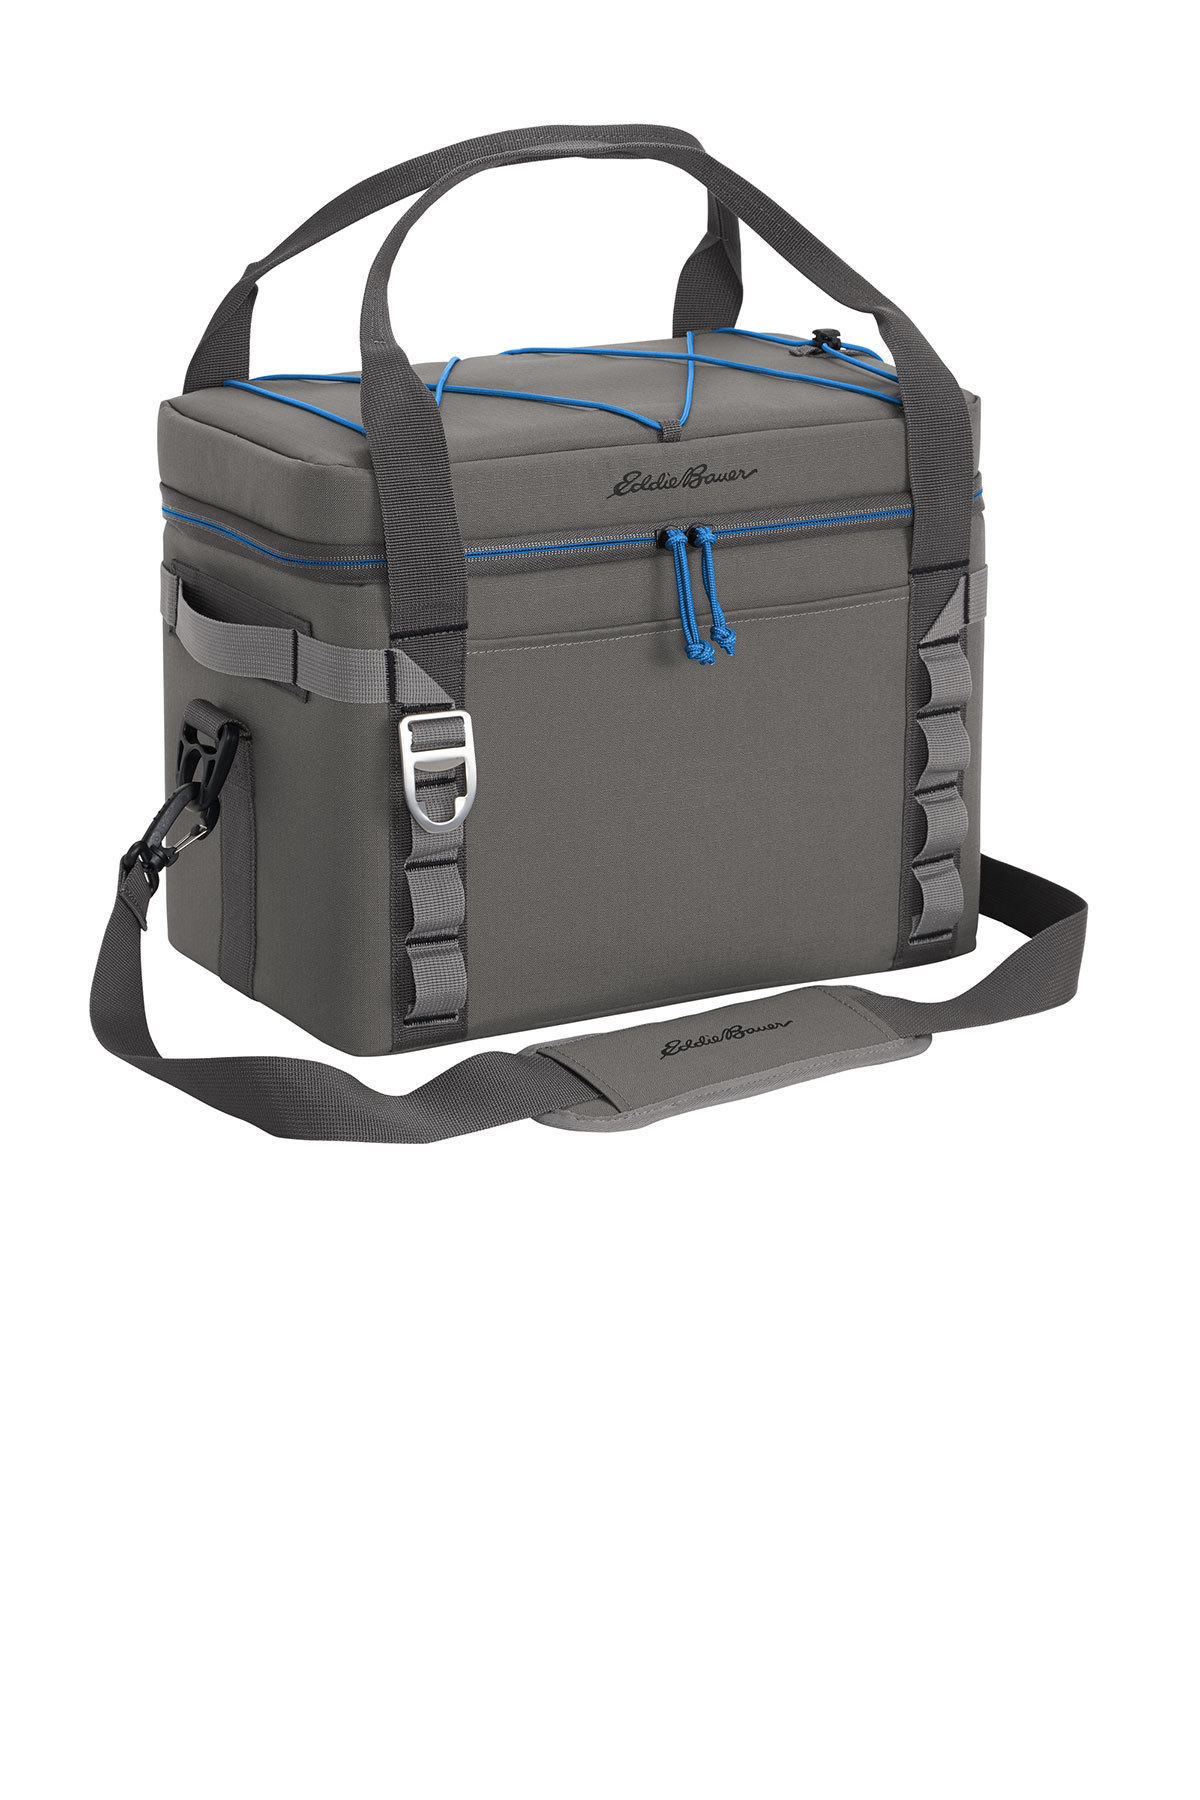 Grey/Blue (Out of Stock)